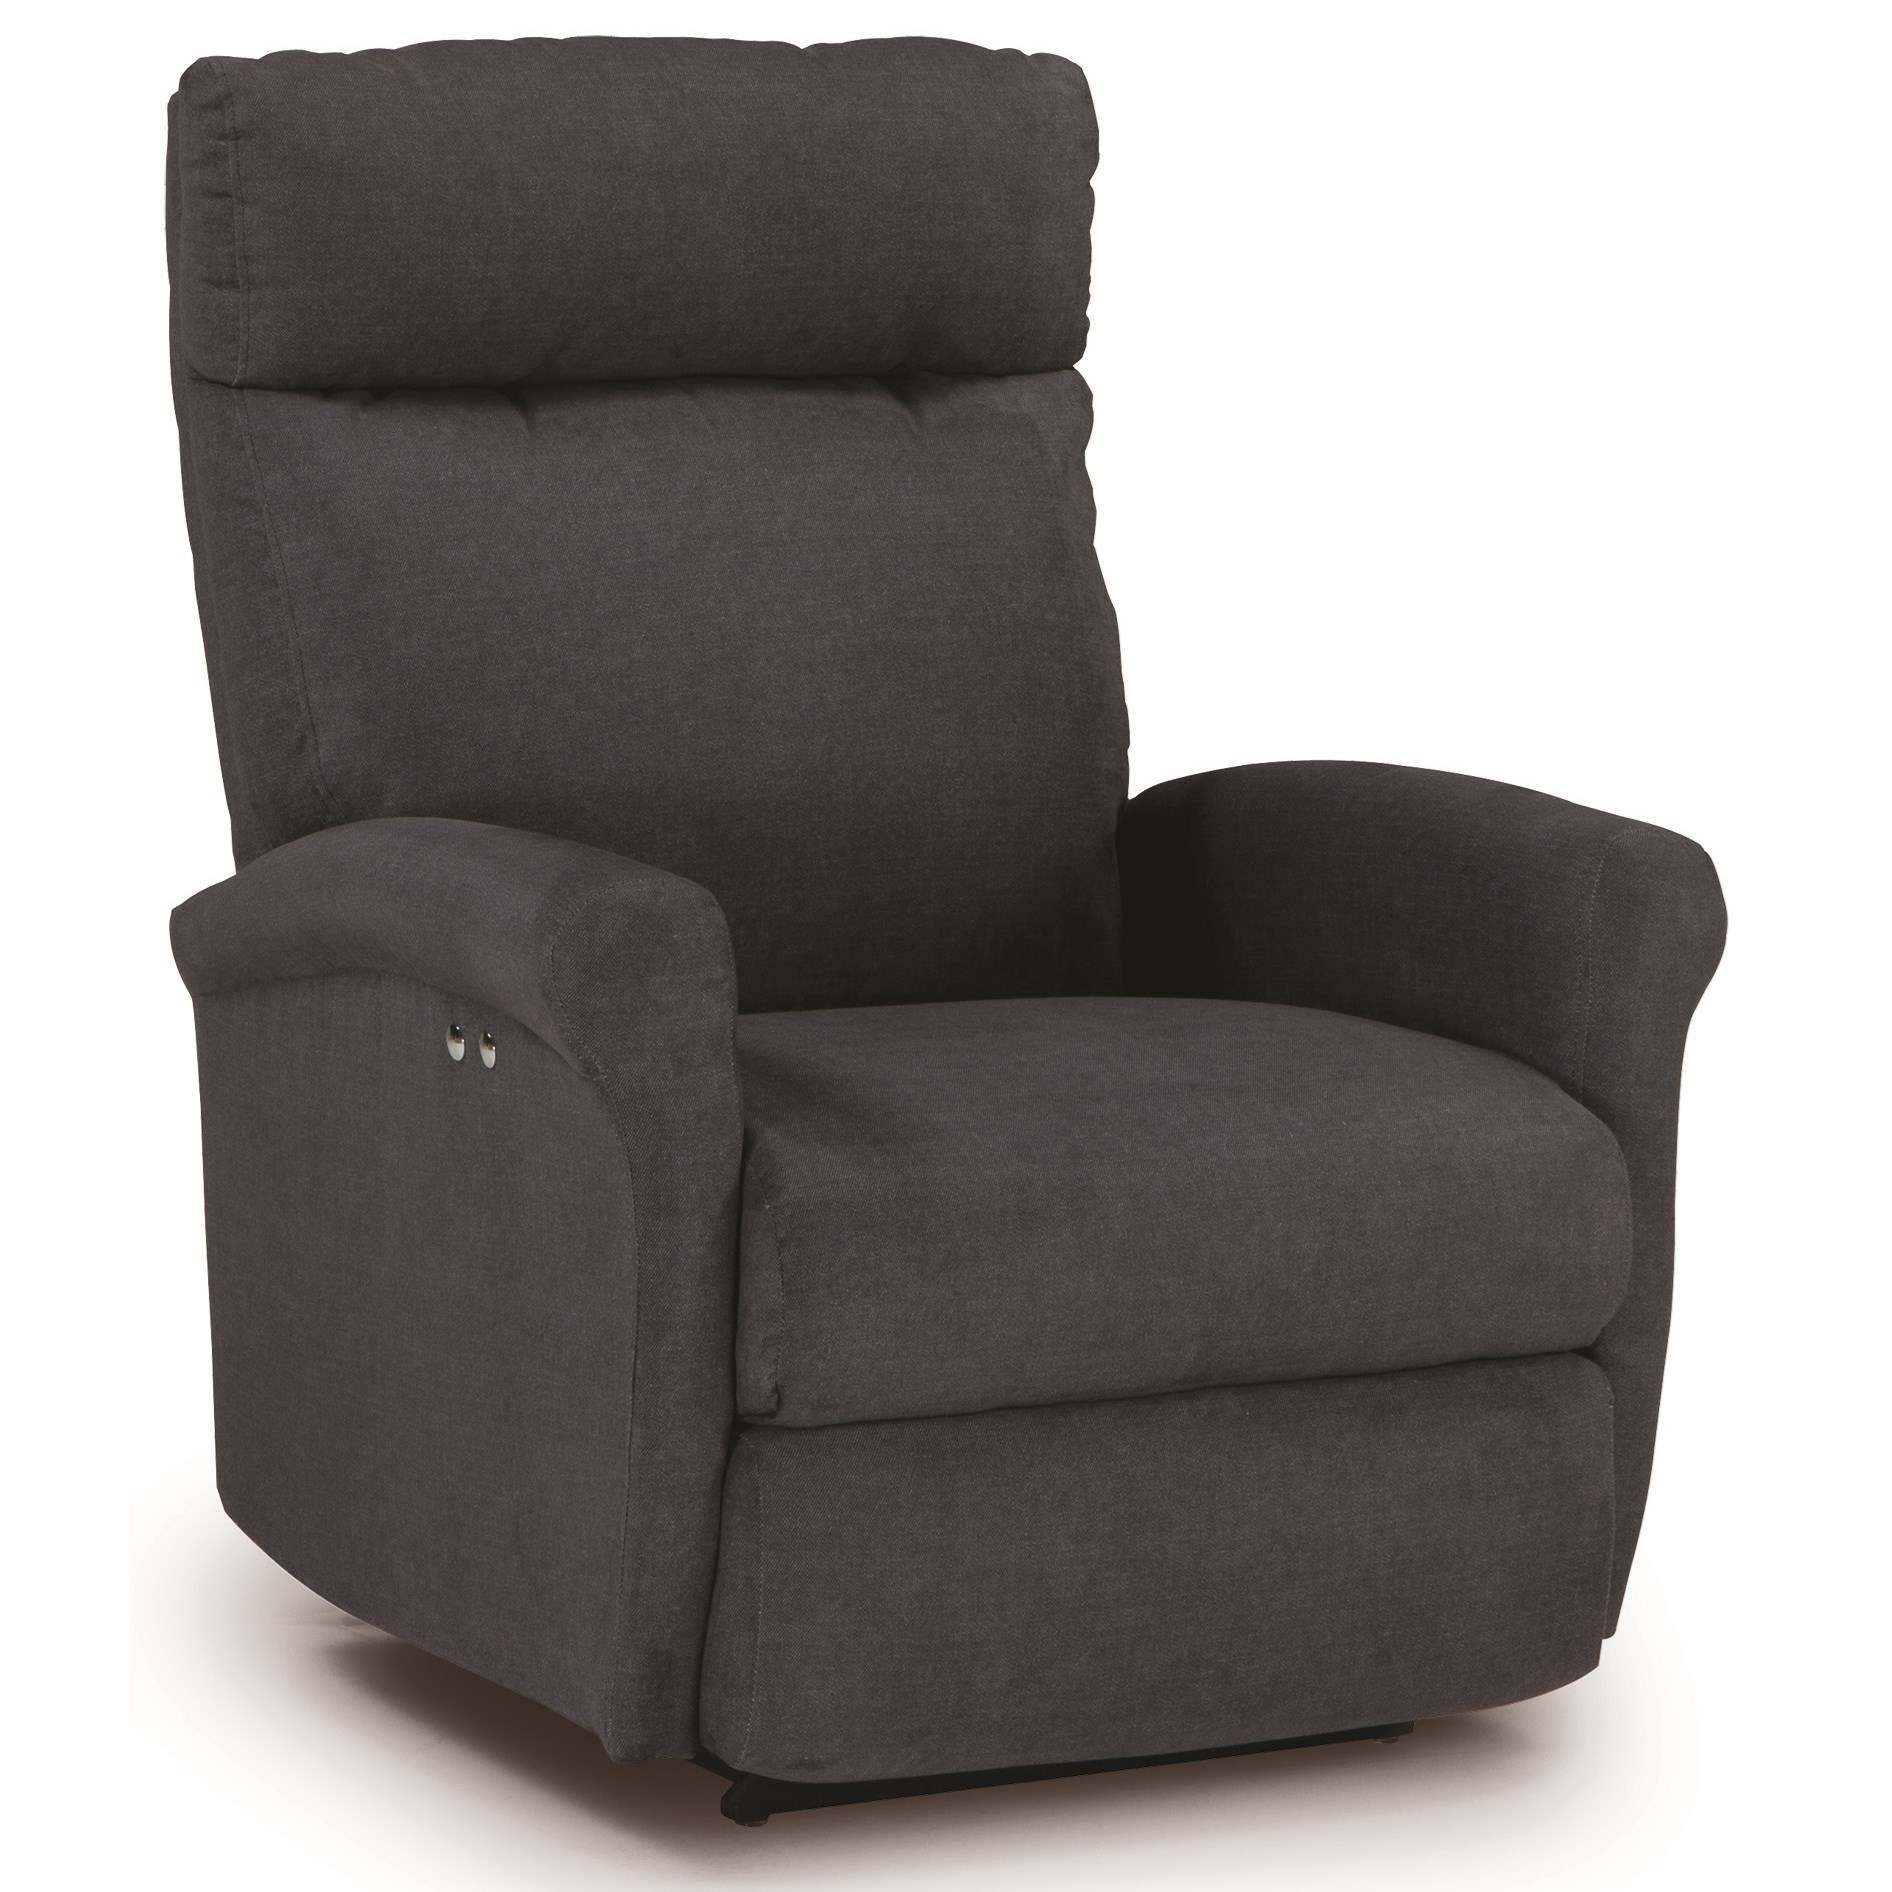 Best Home Furnishings Recliners - Petite Power Lift Recliner with Rolled Arms  sc 1 st  Wayside Furniture : best lift recliner - islam-shia.org